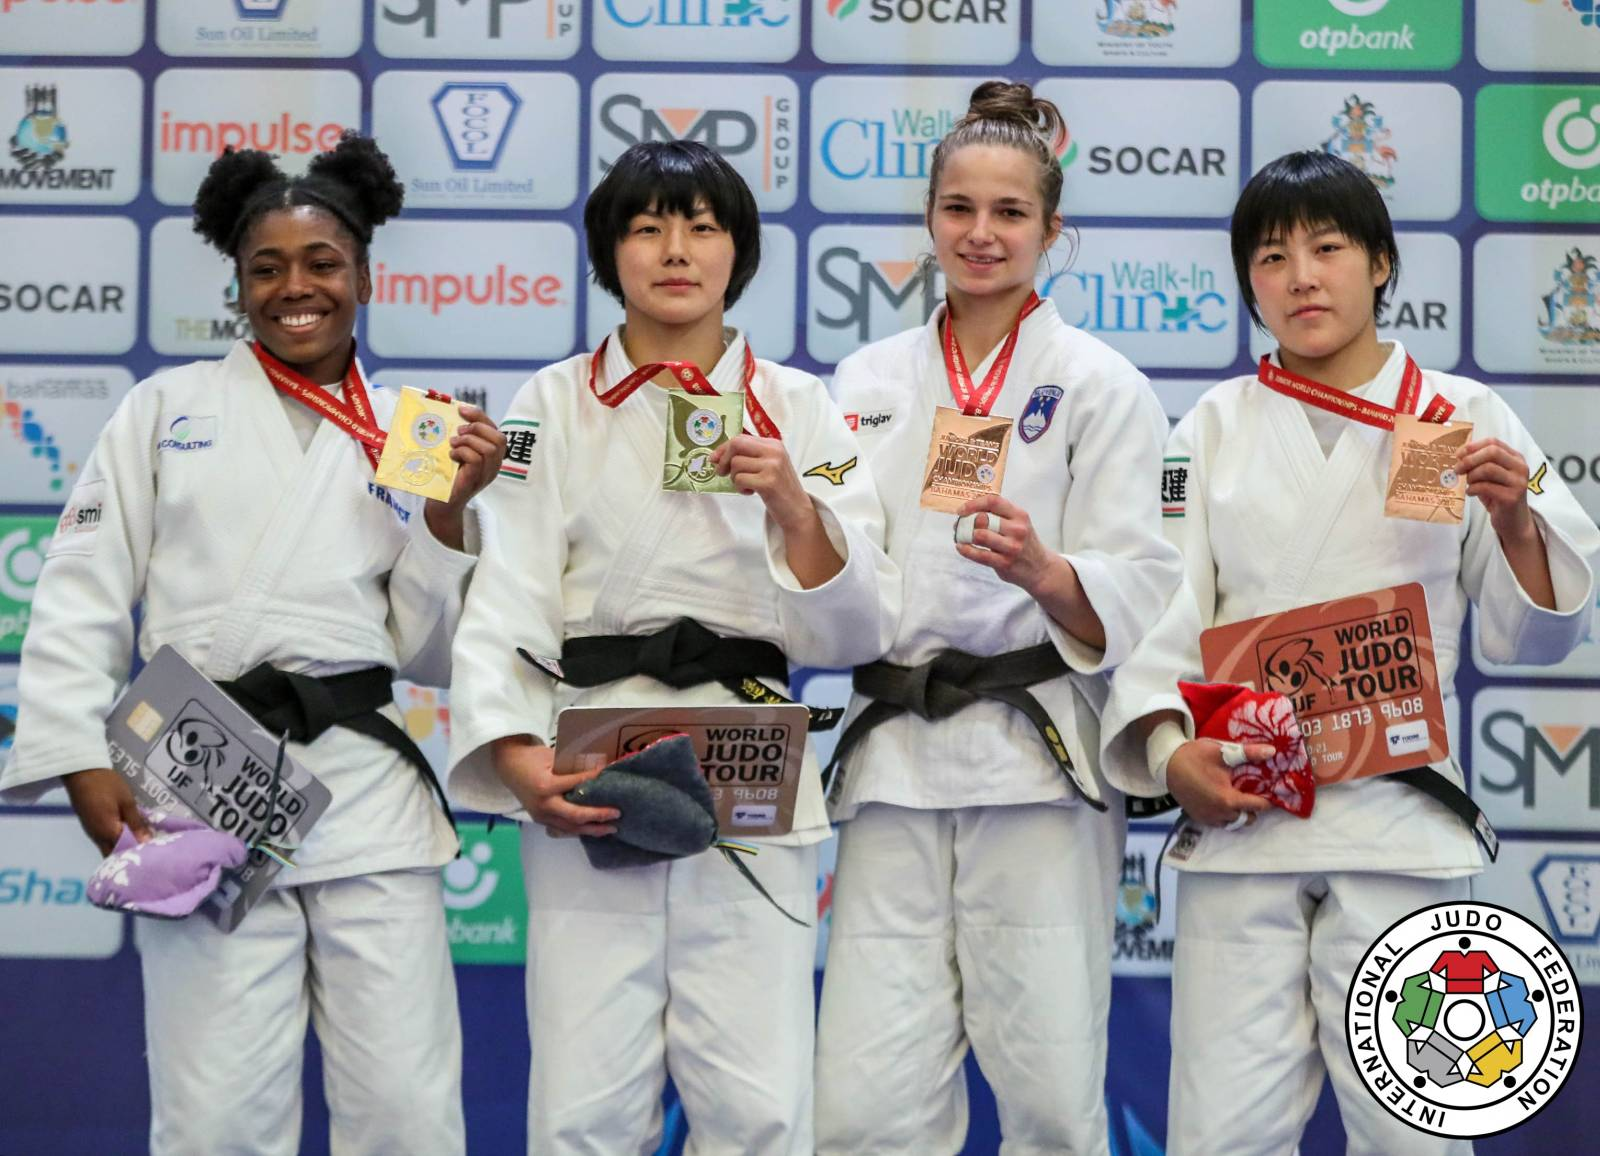 20181018_ijf_wcj_nassau_57_final_podium_57